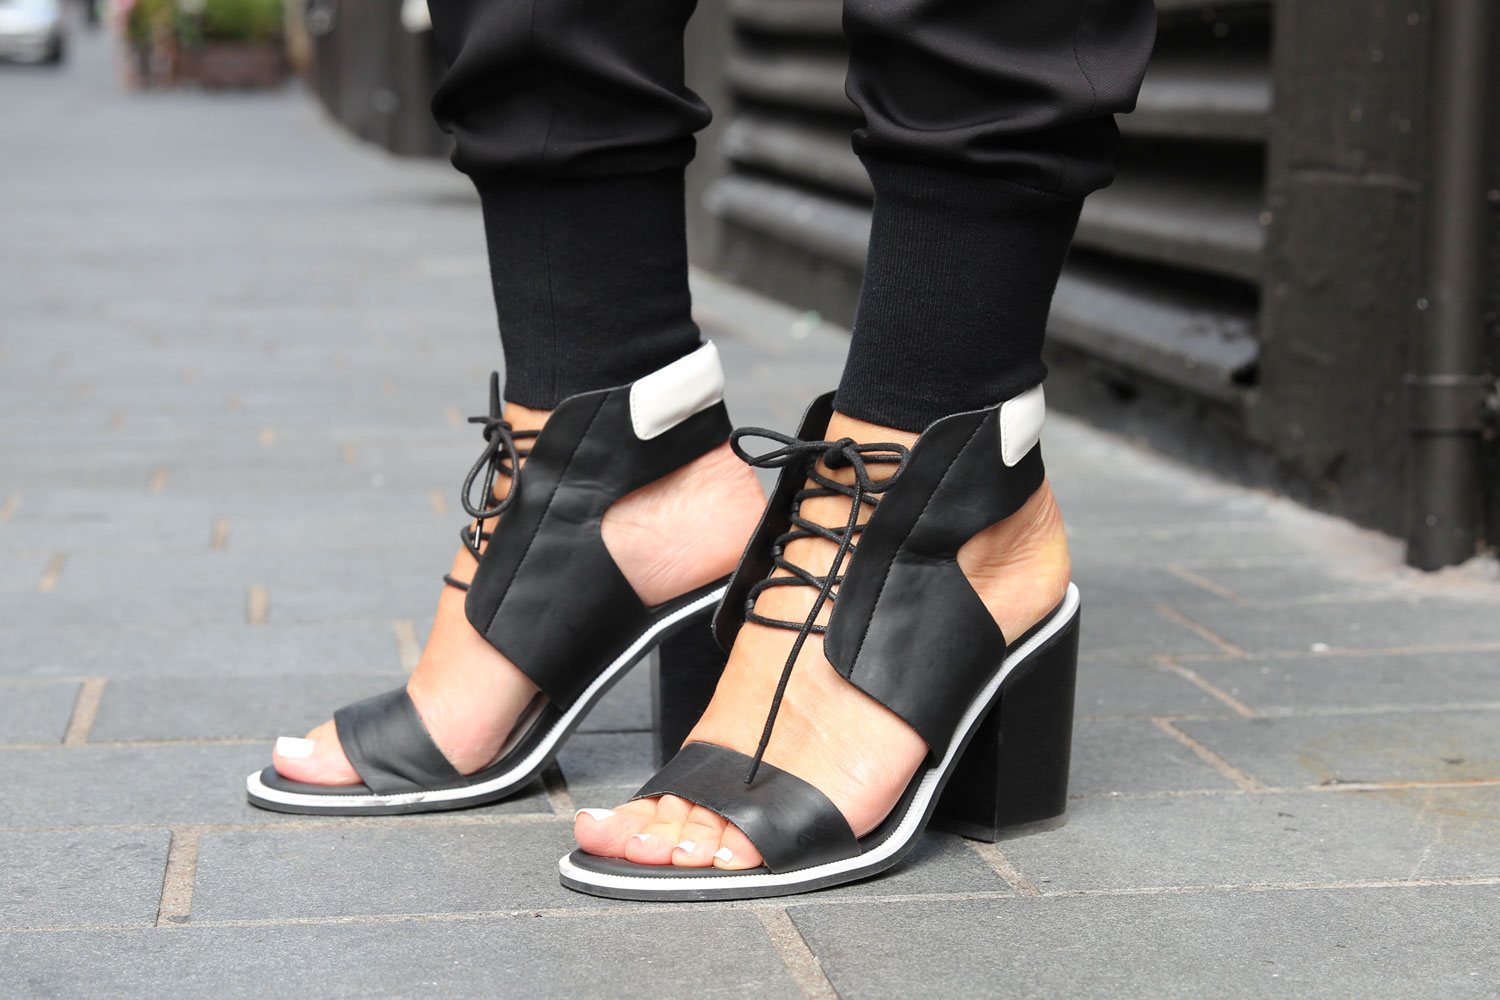 Black and white senso shoes